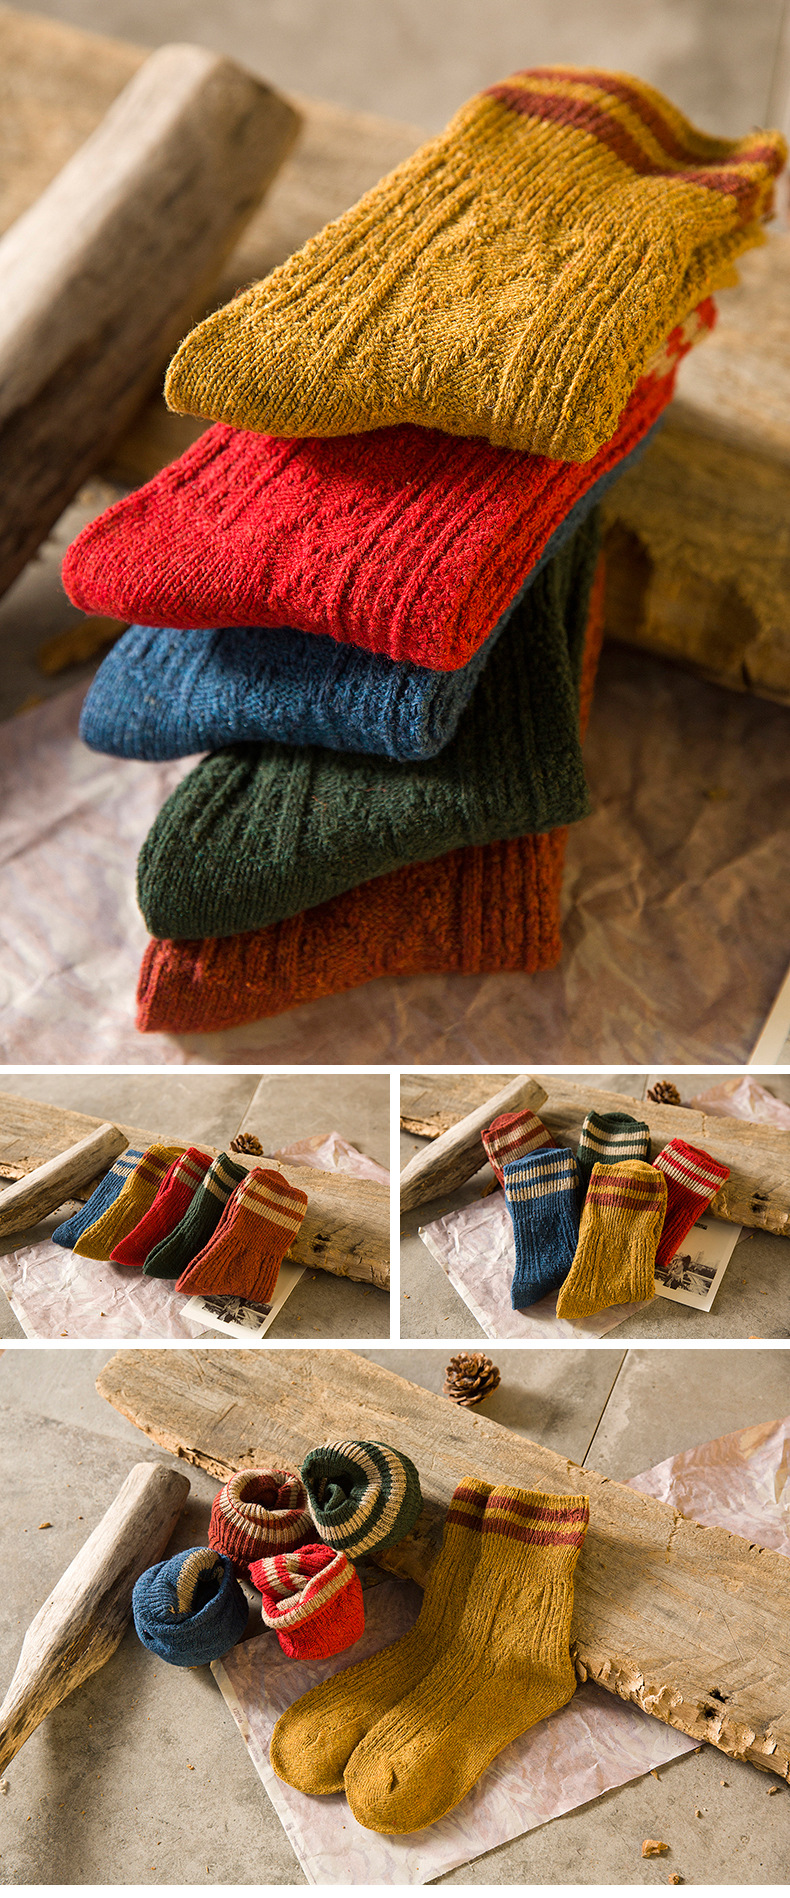 HTB1VOYMah rK1RkHFqDq6yJAFXaw - 5 Colors New Fashion Retro Wool Women Socks Autumn Winter Wamer Cotton Girl Socks Female Japanese Tube Sock Students Hosiery